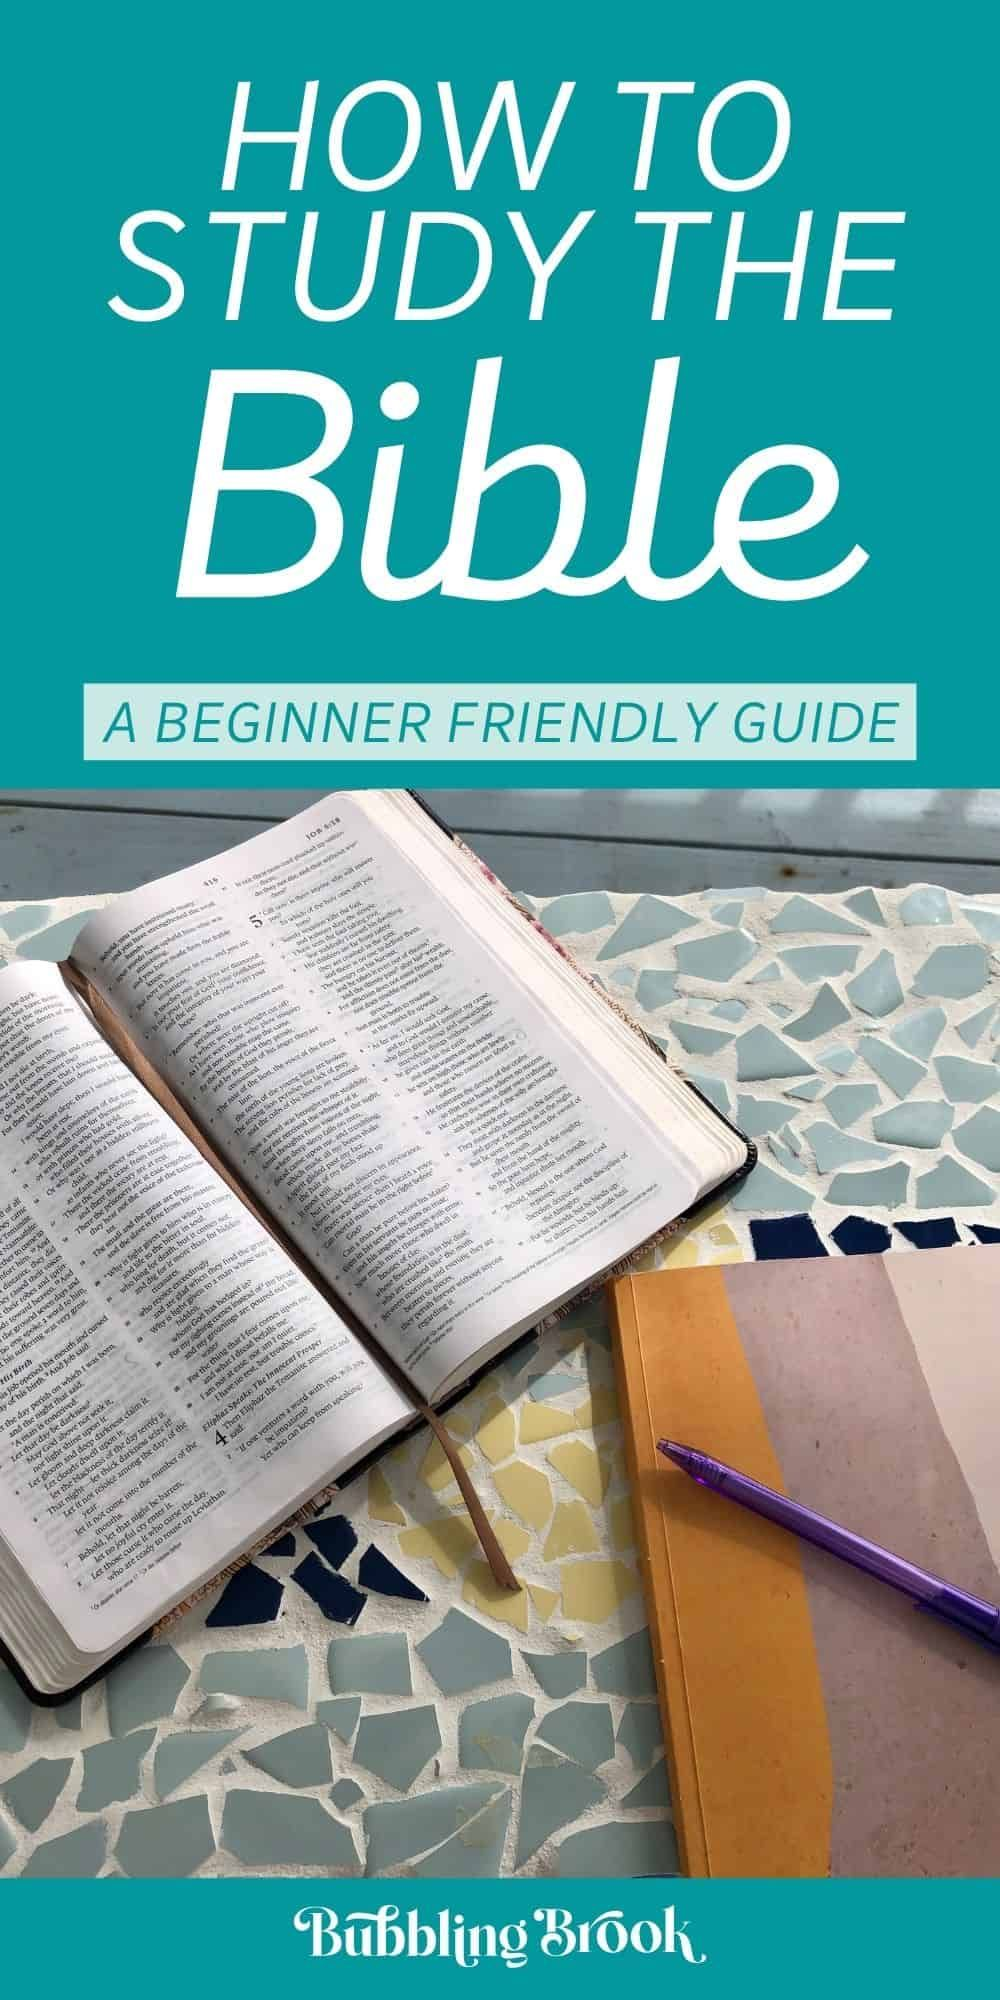 How To Study The Bible For Beginners Ultimate Guide In 2021 Easy Bible Study Bible Studies For Beginners Free Bible Study Easiest bible to read for beginners